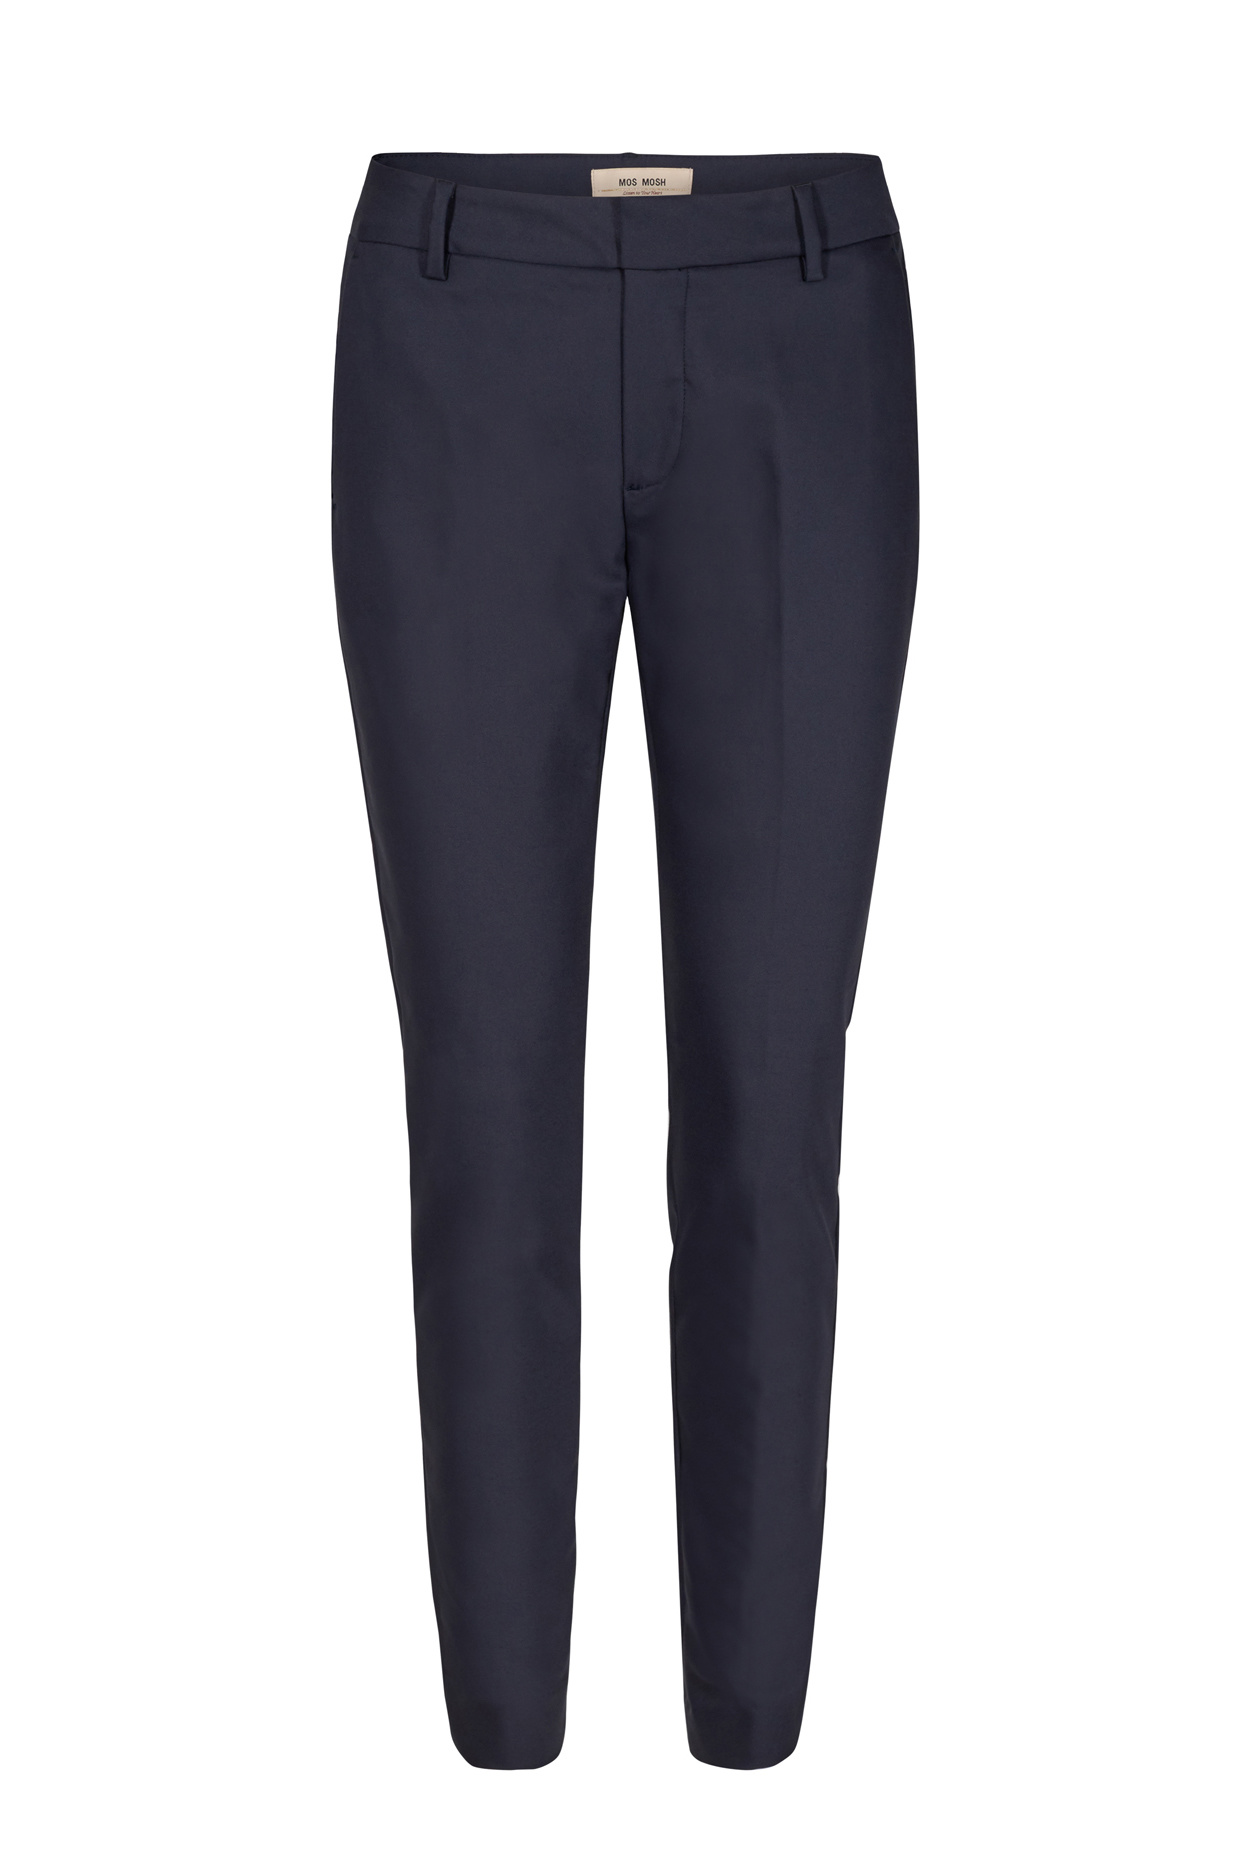 Abbey Night Pant Sustainable - Navy-1